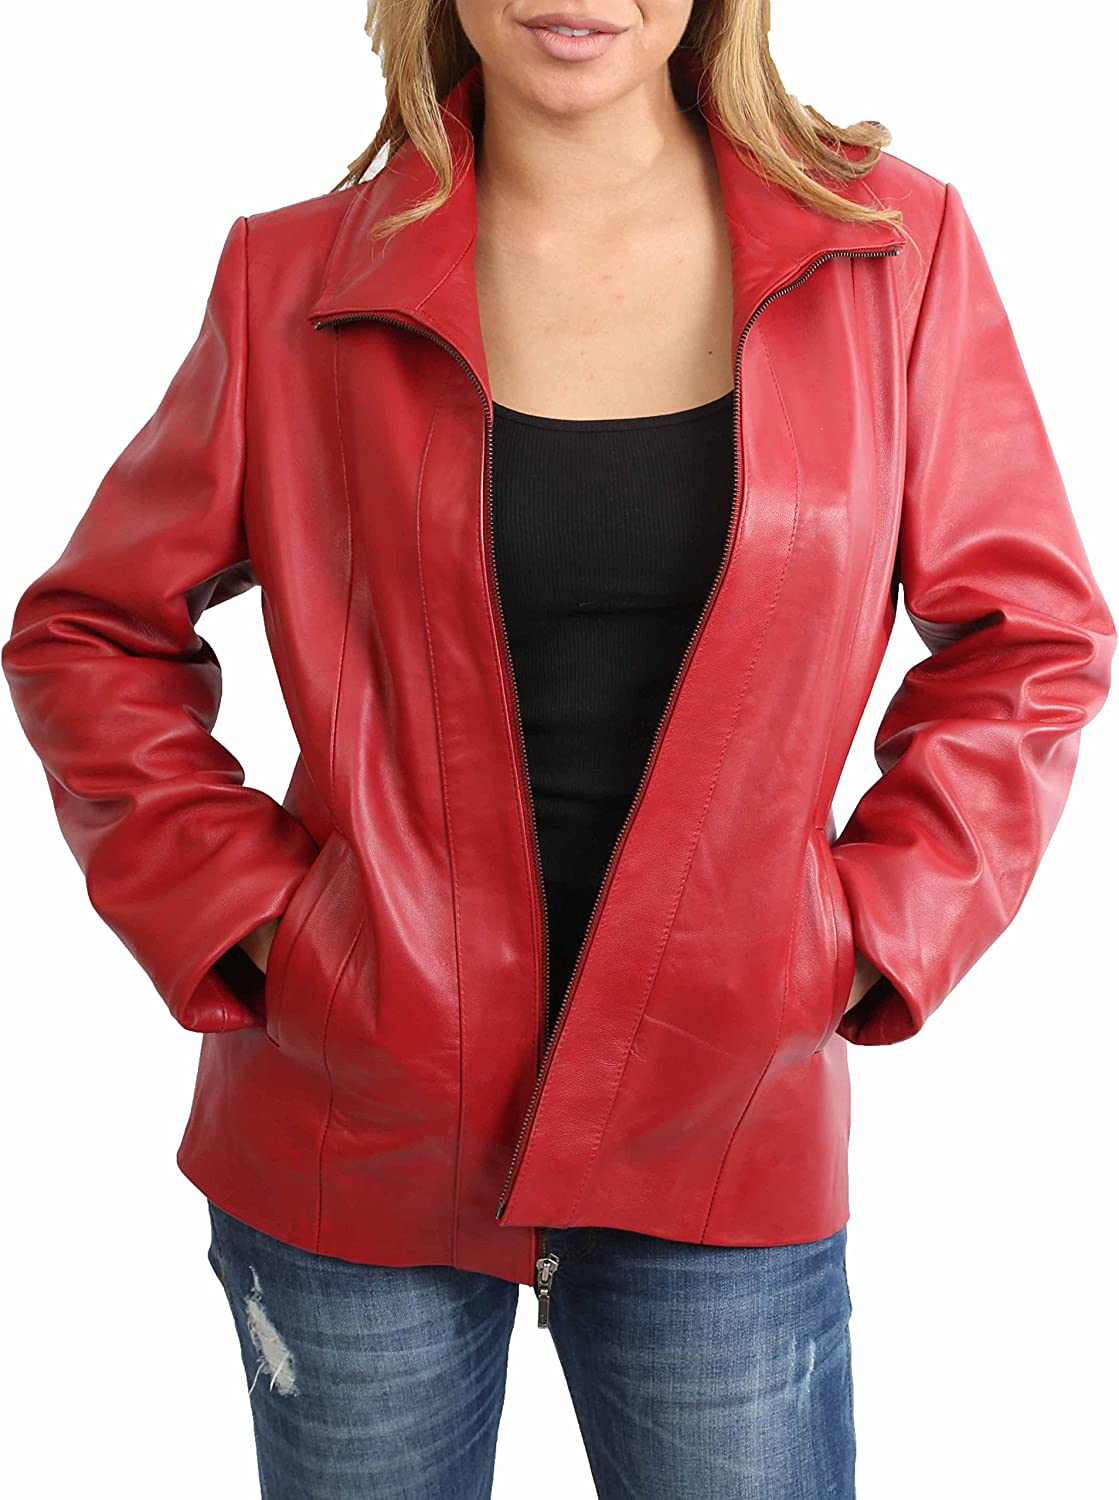 A1 FASHION GOODS Womens Classic Fitted Zip Up Biker Real Leather Jacket Nicole Red